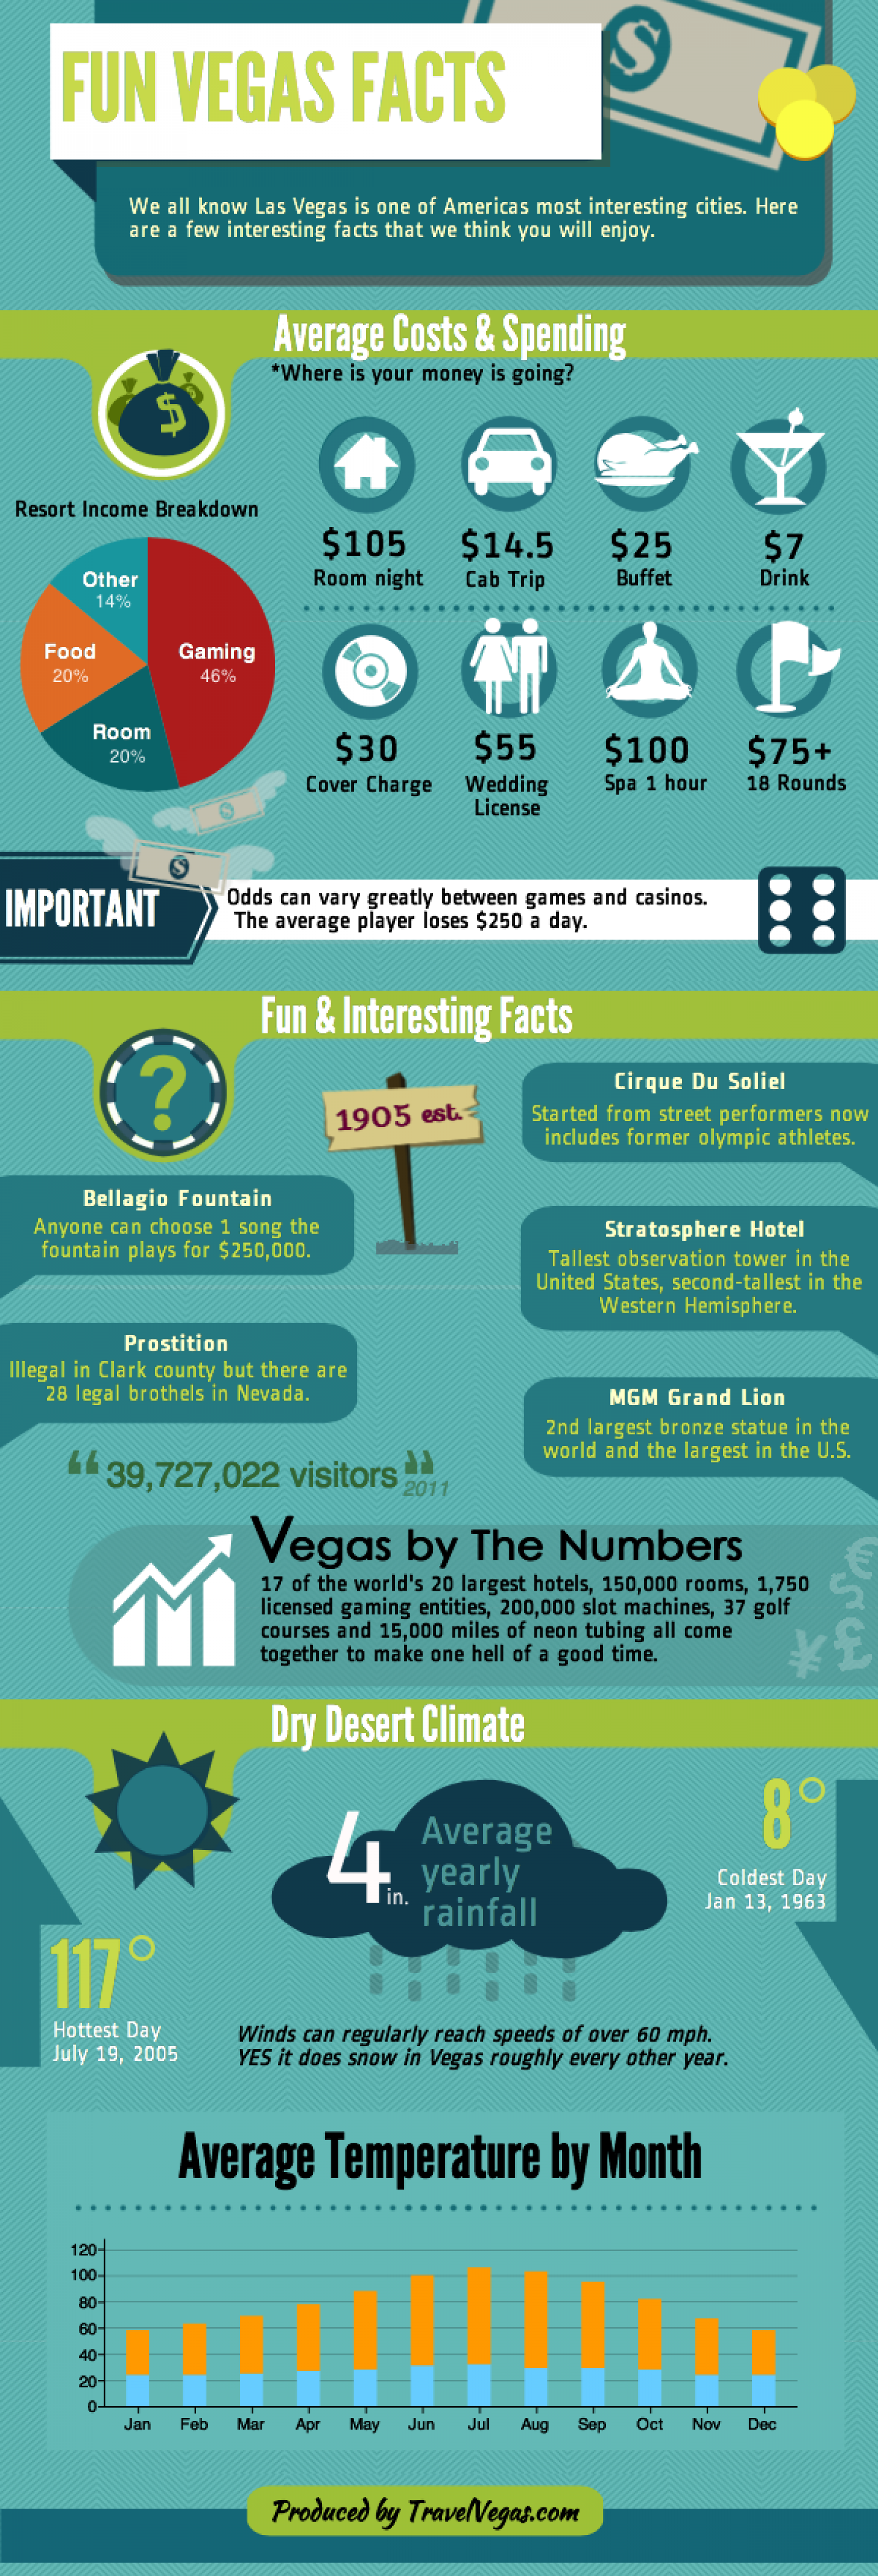 Fun Las Vegas Facts Infographic